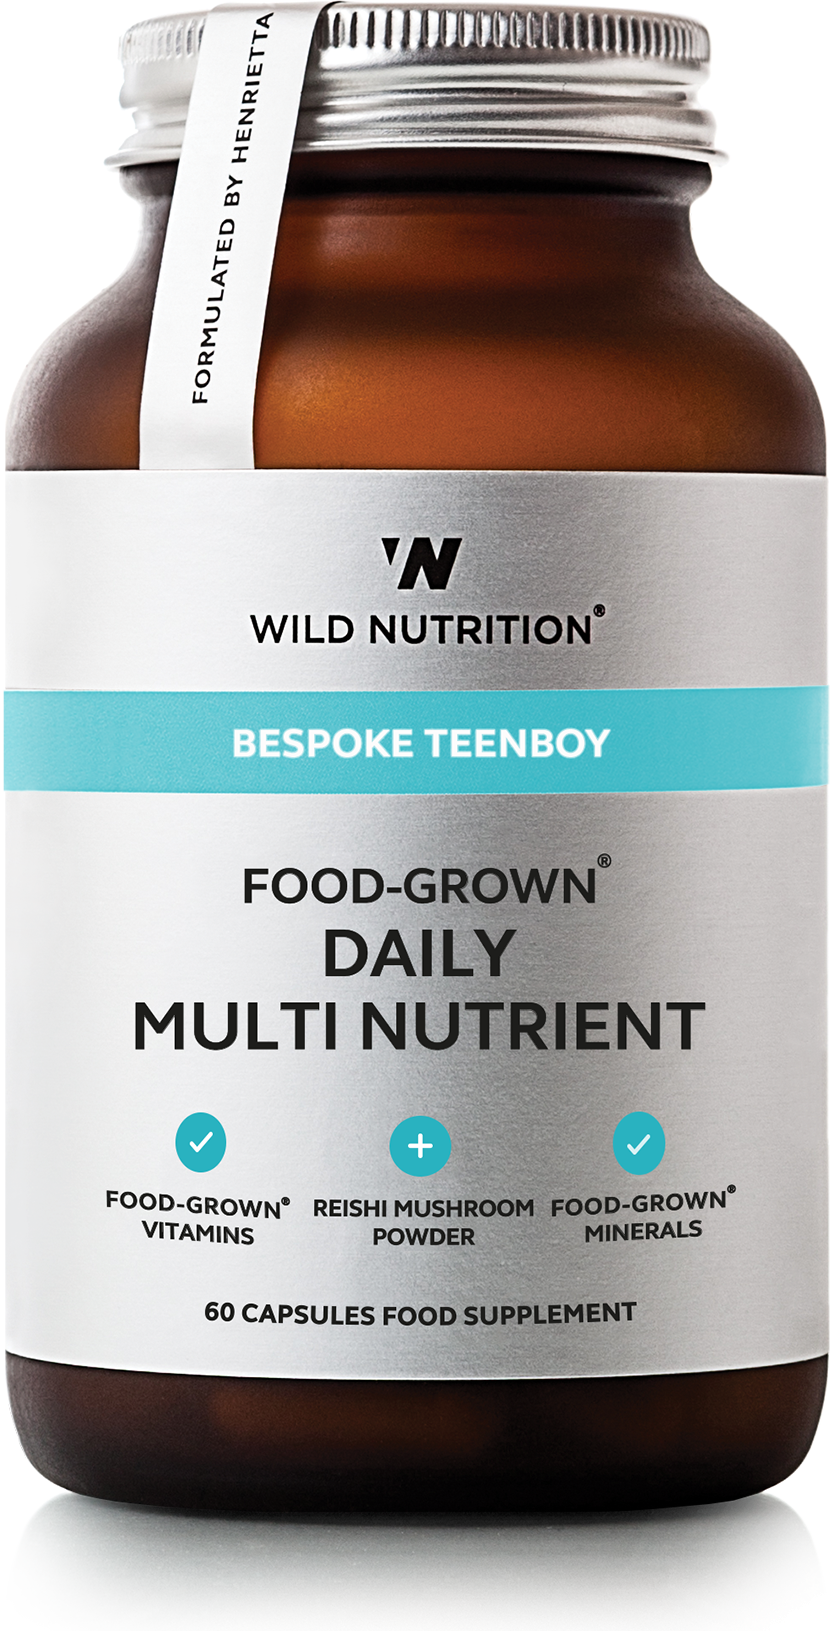 Wild nutrition teenboy